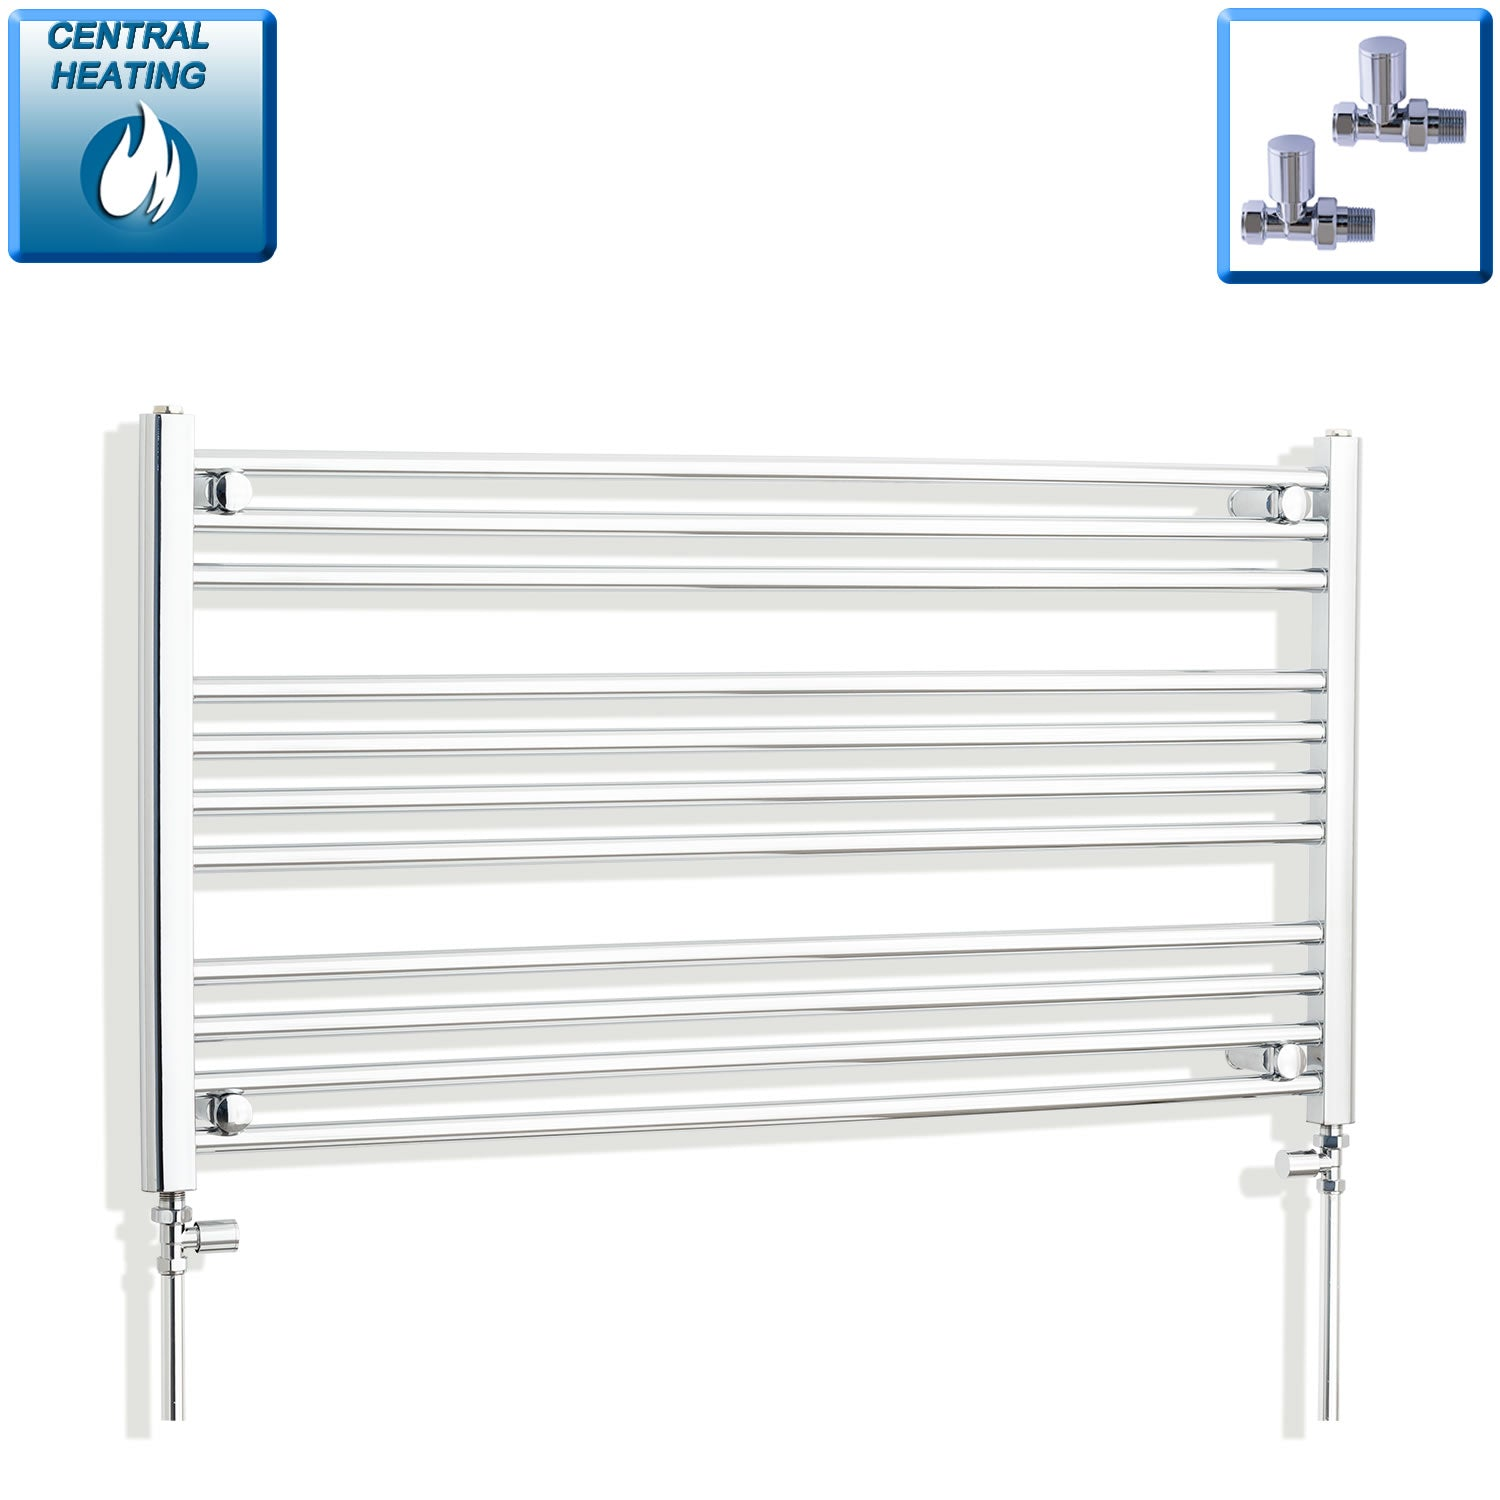 1300mm Wide 600mm High Chrome Towel Rail Radiator With Straight Valve